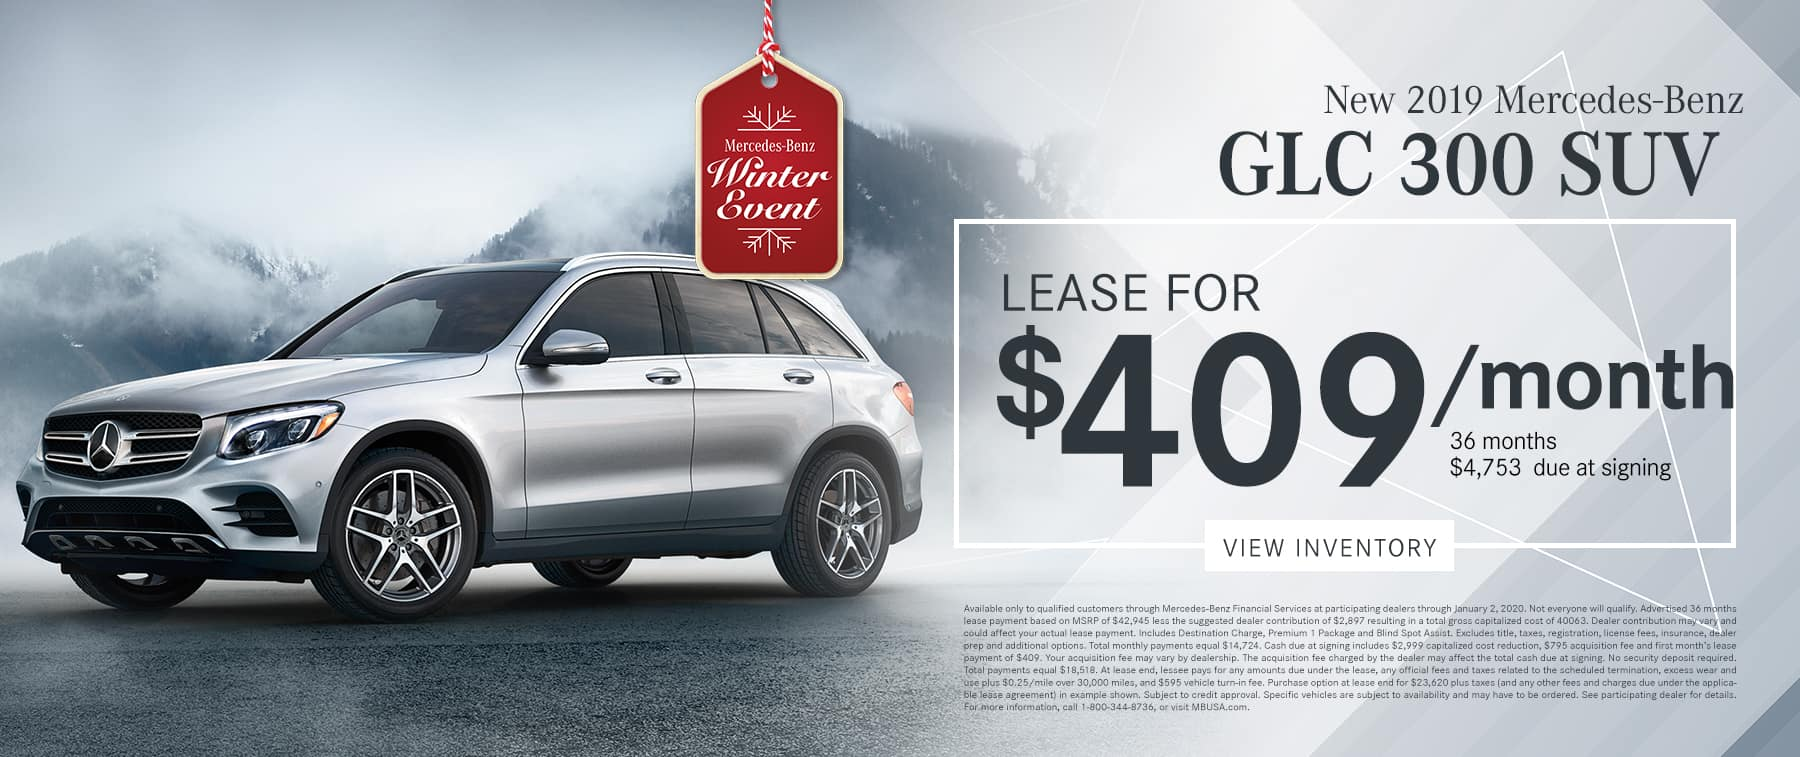 2019 GLC 300 LEASE FOR $409/MO.